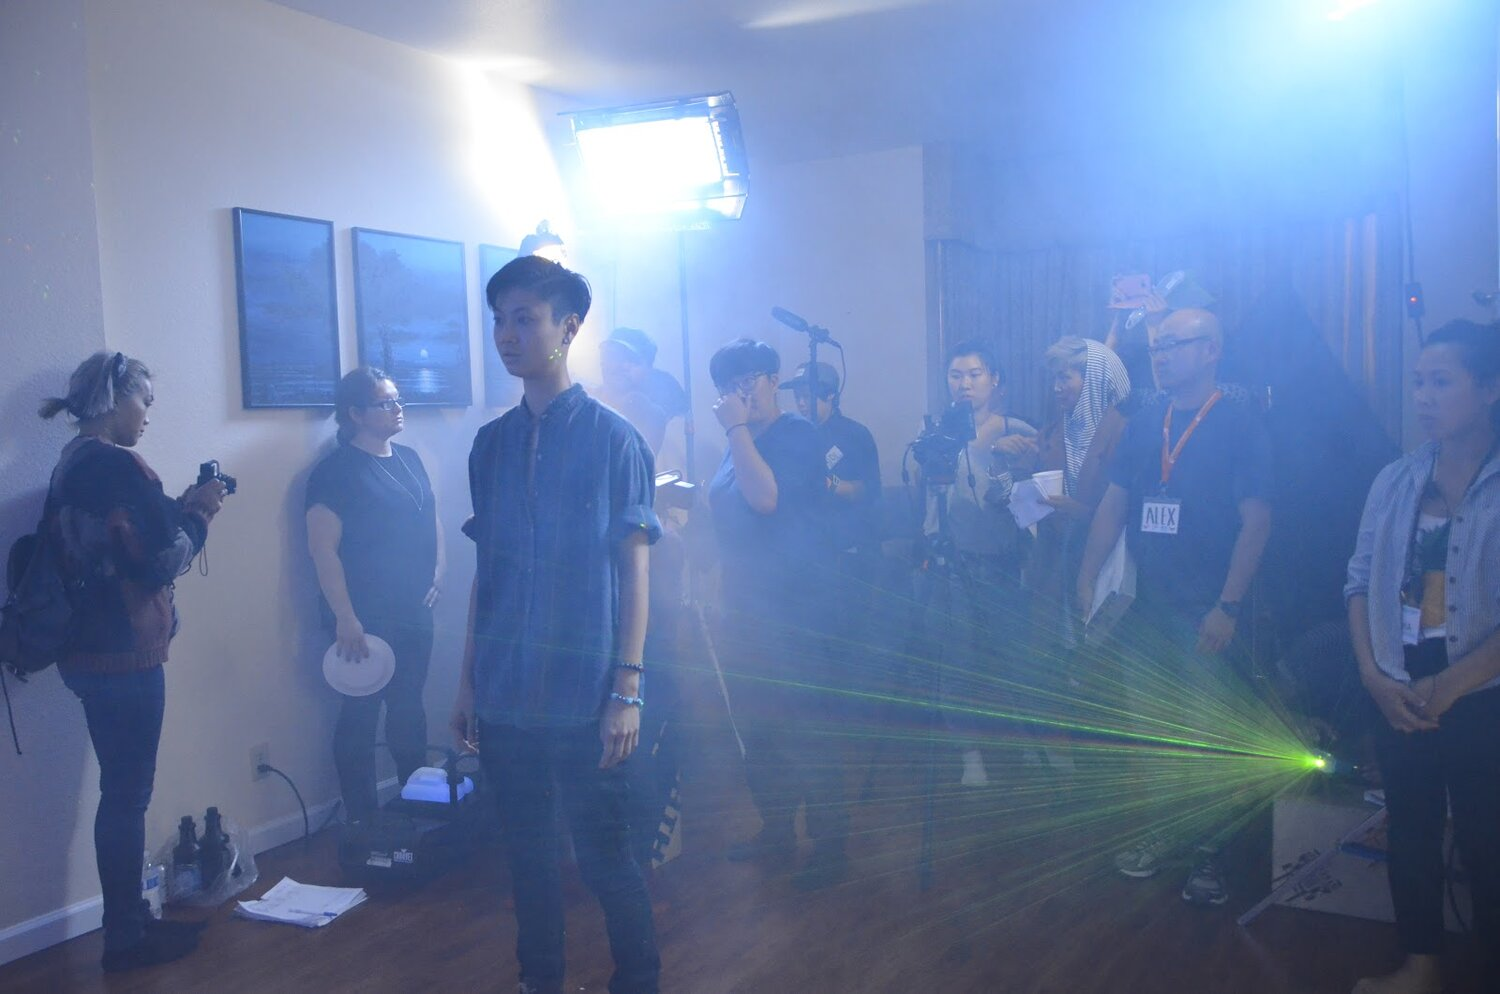 Actor Ck is standing in front of a film crew in a living room filled with fog and green lights.